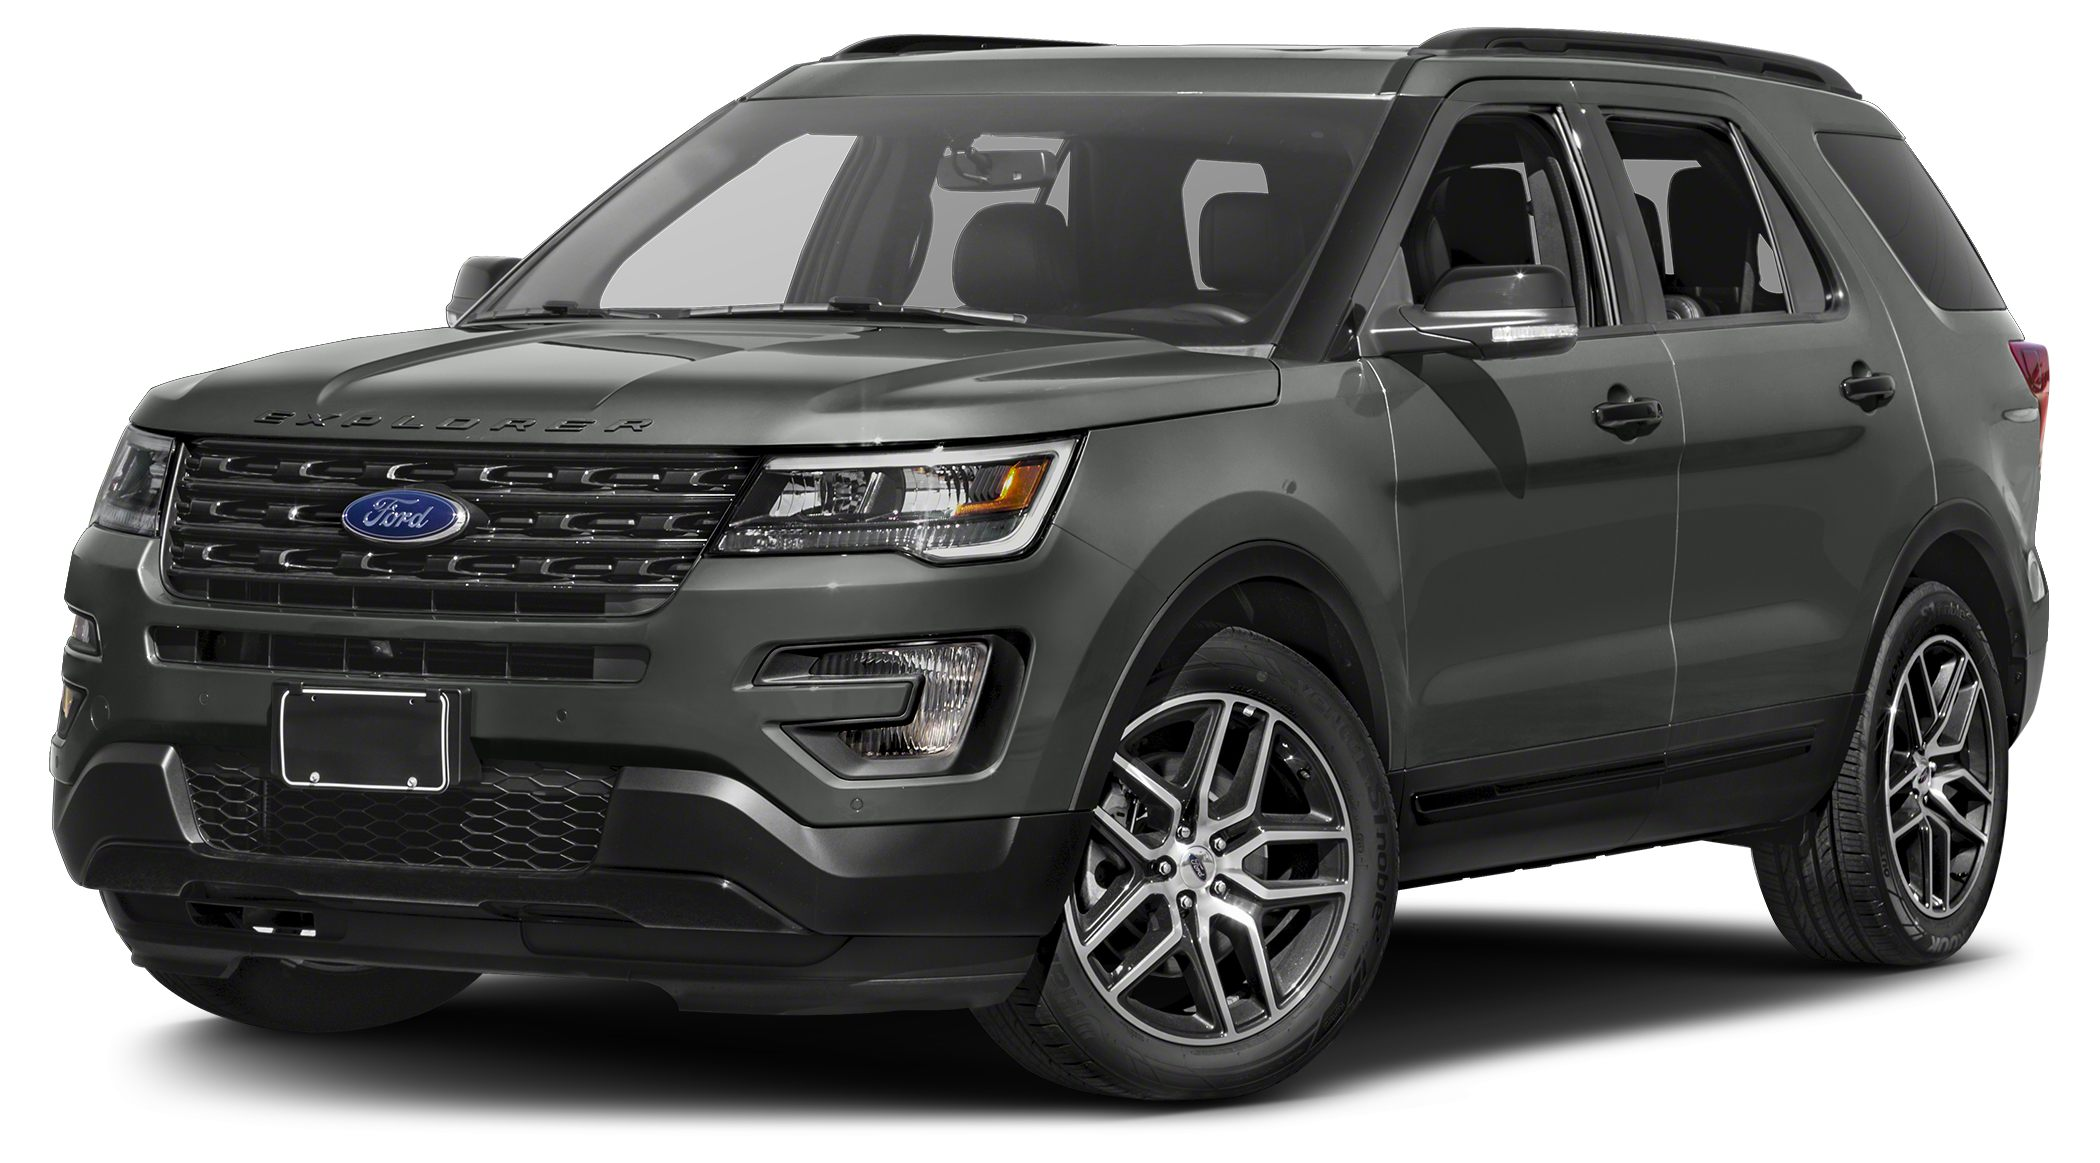 2016 Ford Explorer Sport Get away in this 2016 Ford Explorer Sport and experience a one-of-a-kind